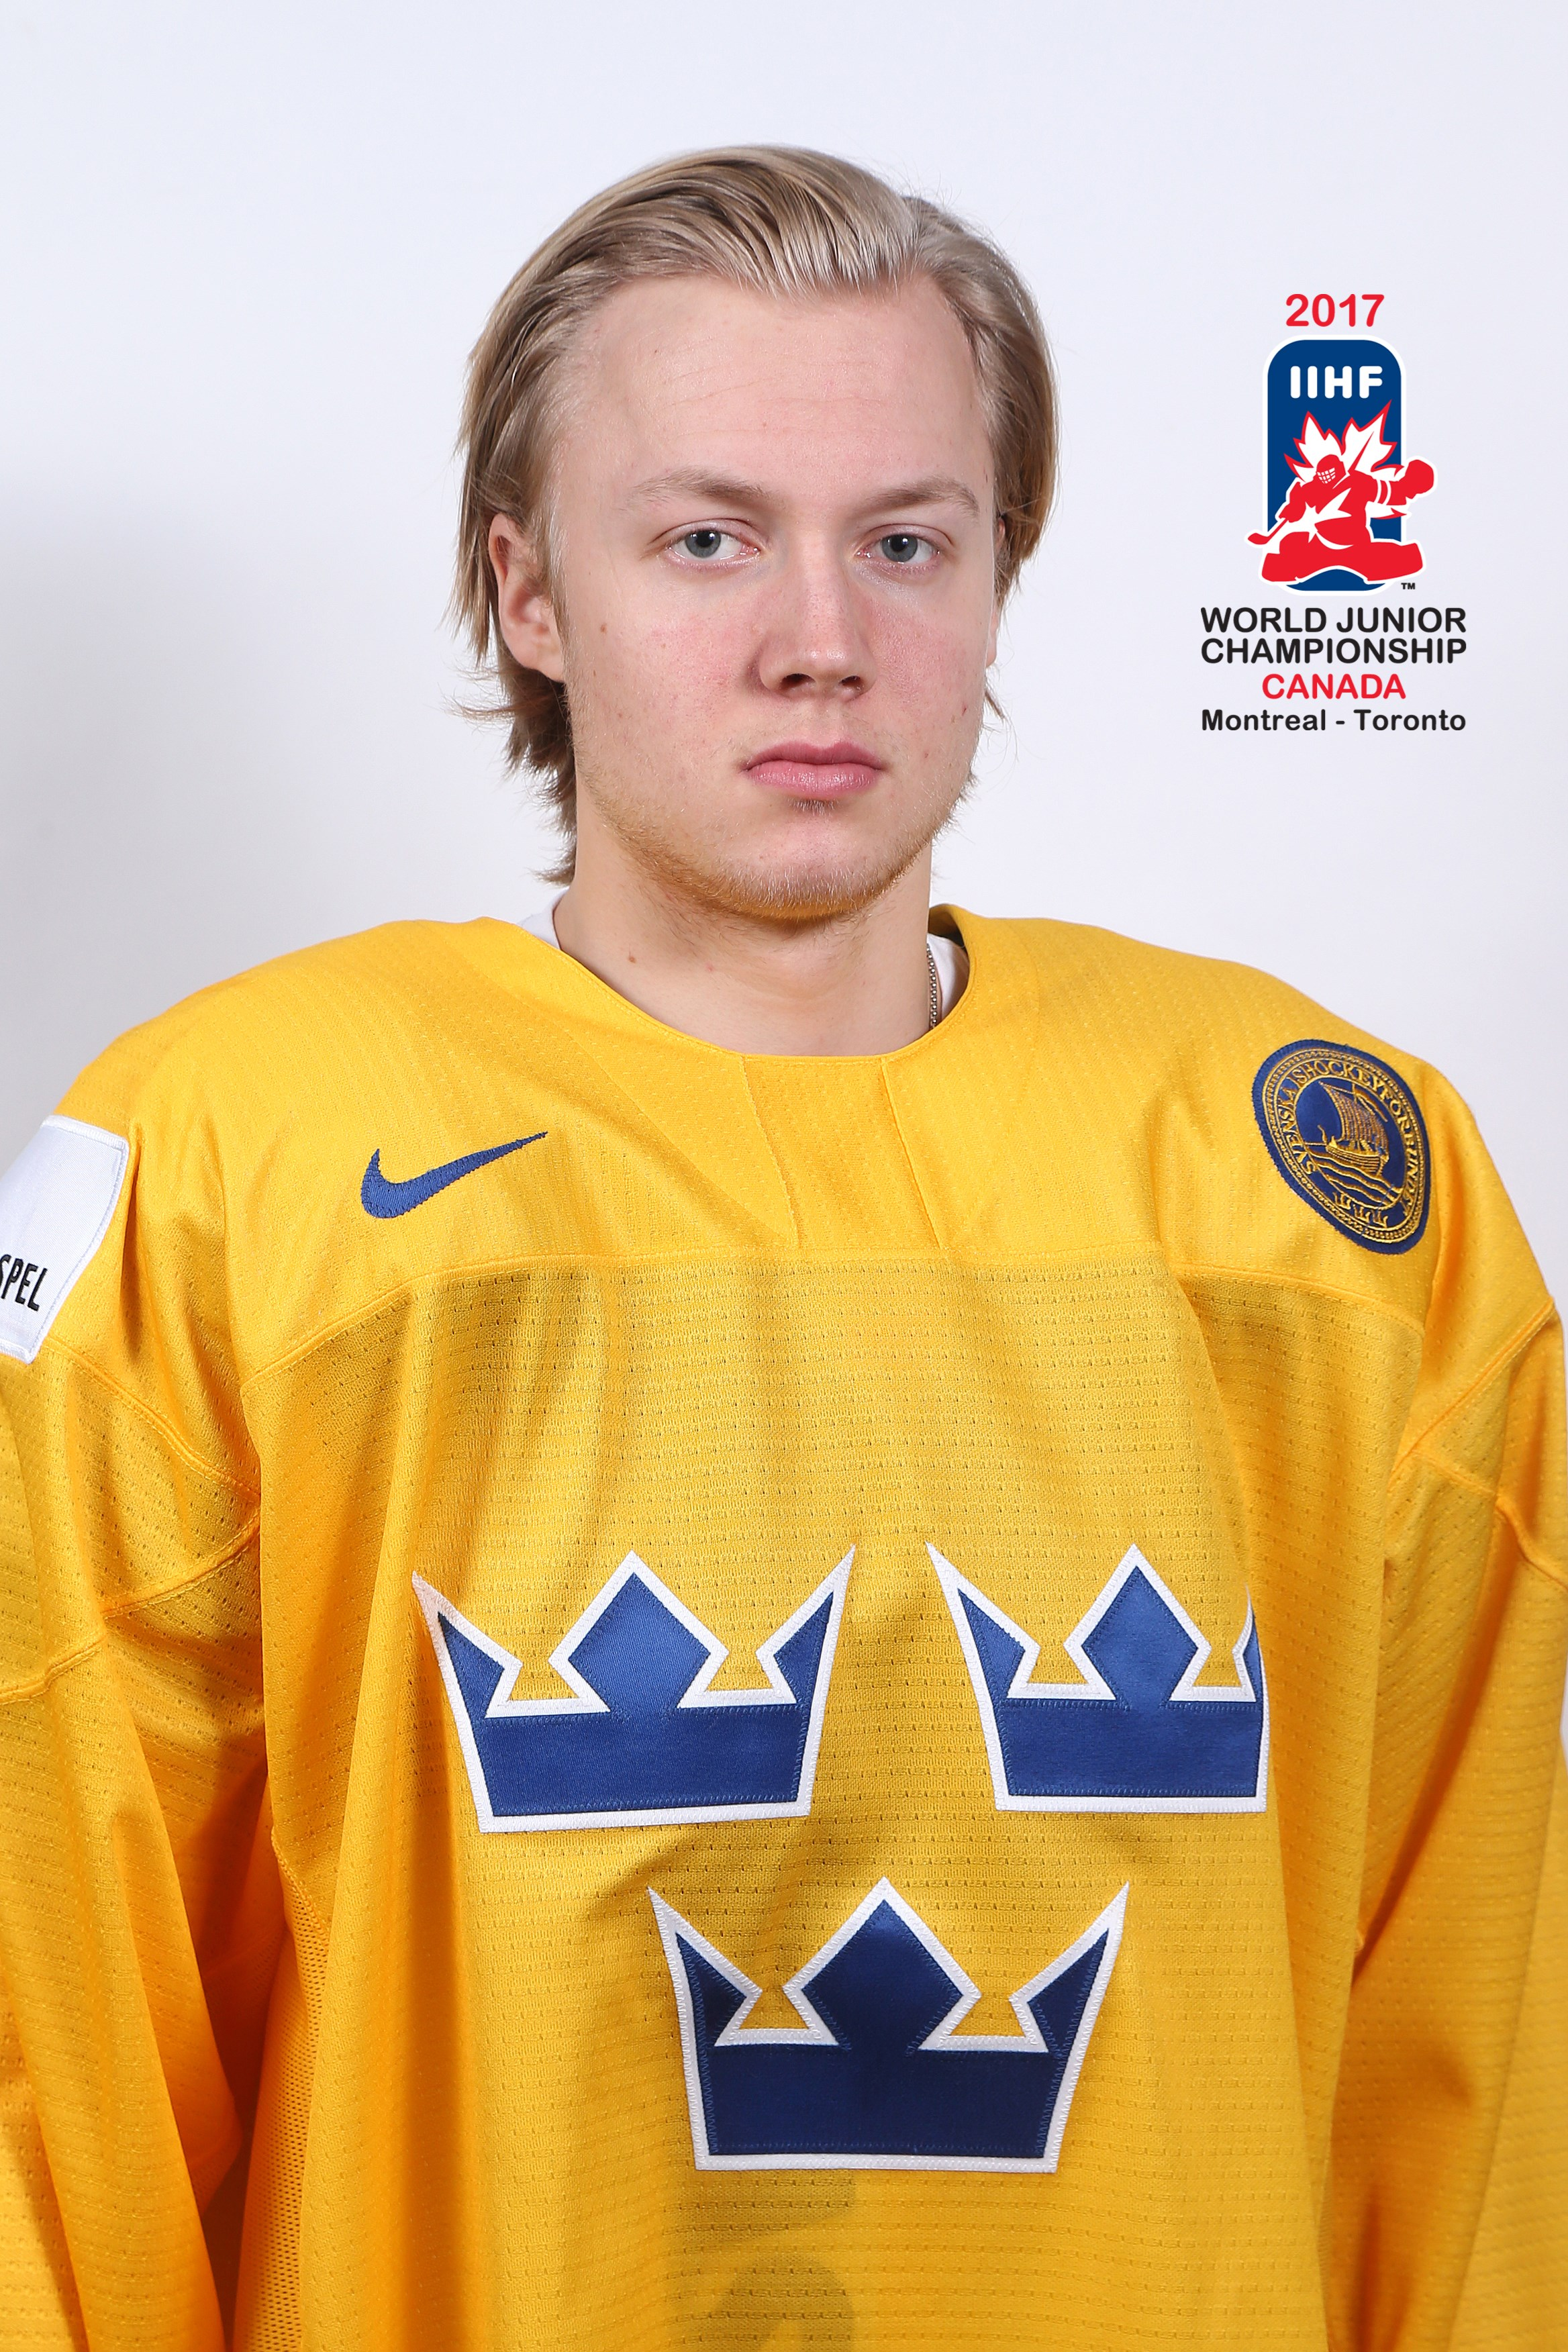 ALL STAR TEAM. Alexander Nylander utsågs av pressen till forward i JVM::s All Star Team. Foto: ANDRE RINGUETTE/HHOF-IIHF IMAGES